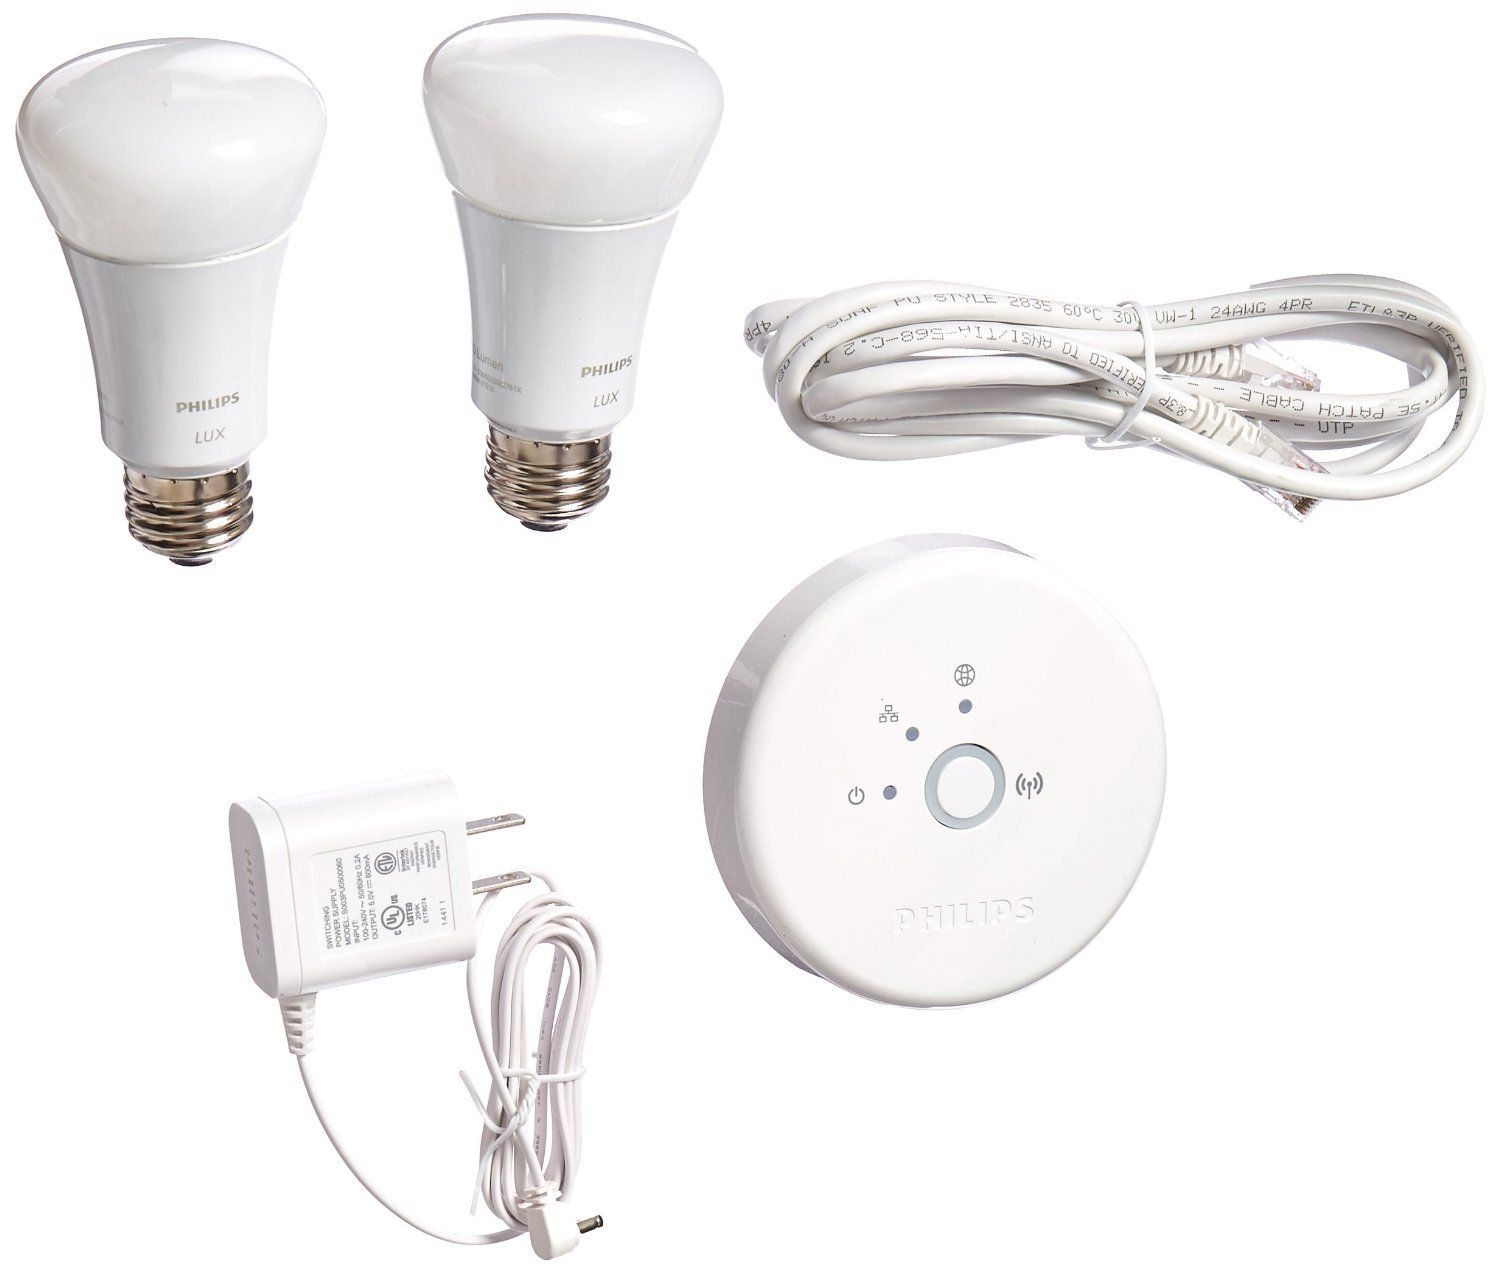 Philips 453761 Hue Lux 60w Equivalent A19 Led Personal Wireless Lighting Starter Kit To View Further For This Item Vi Philips Hue Philips Works With Alexa